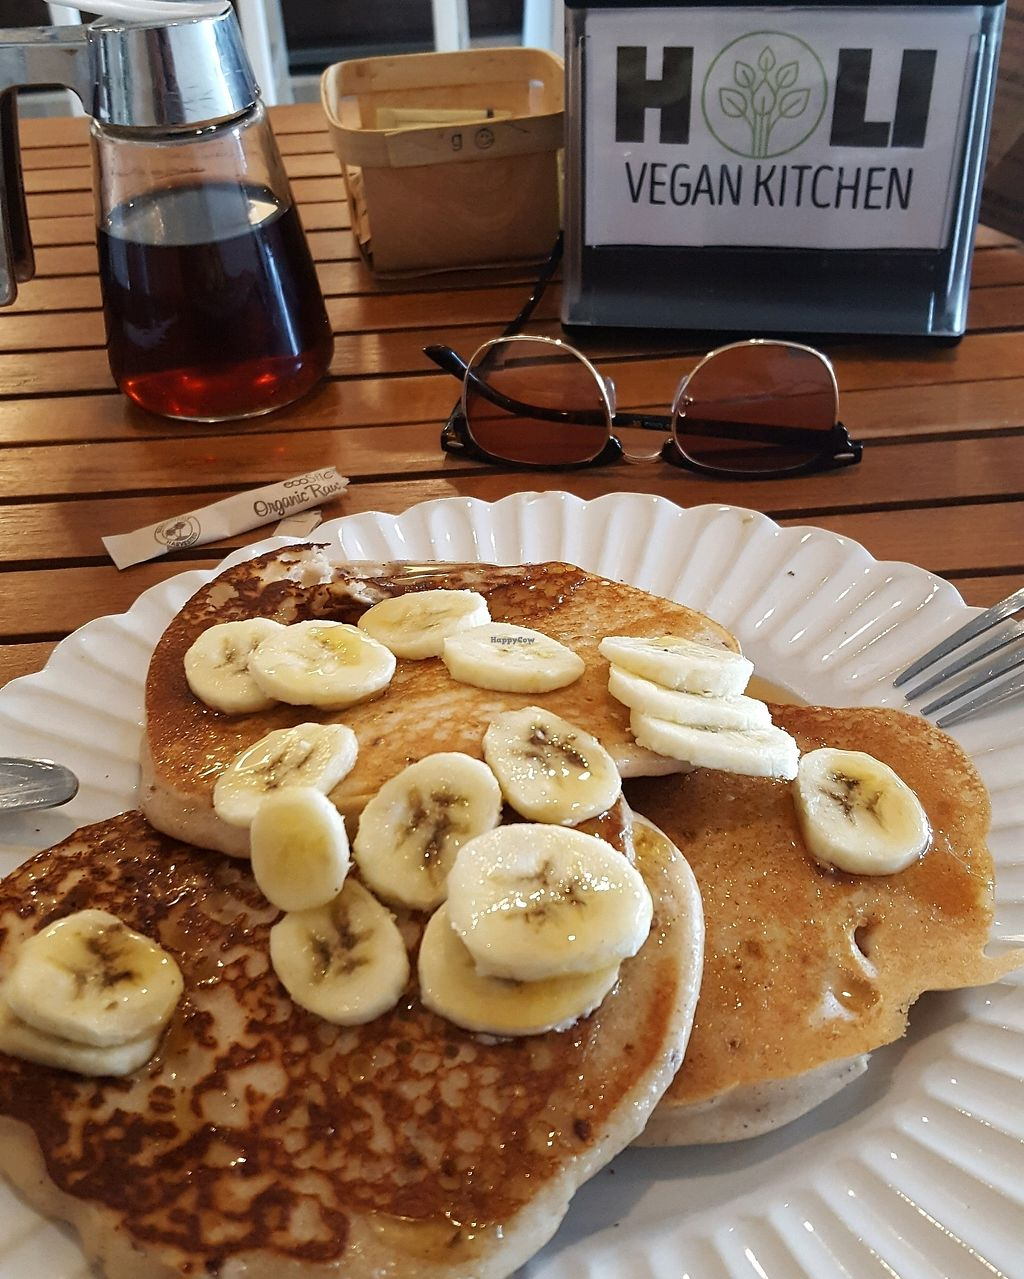 Photo of Holi Vegan Kitchen & Bar  by cottes <br/>Vegan Pancakes <br/> August 23, 2017  - <a href='/contact/abuse/image/76286/296506'>Report</a>